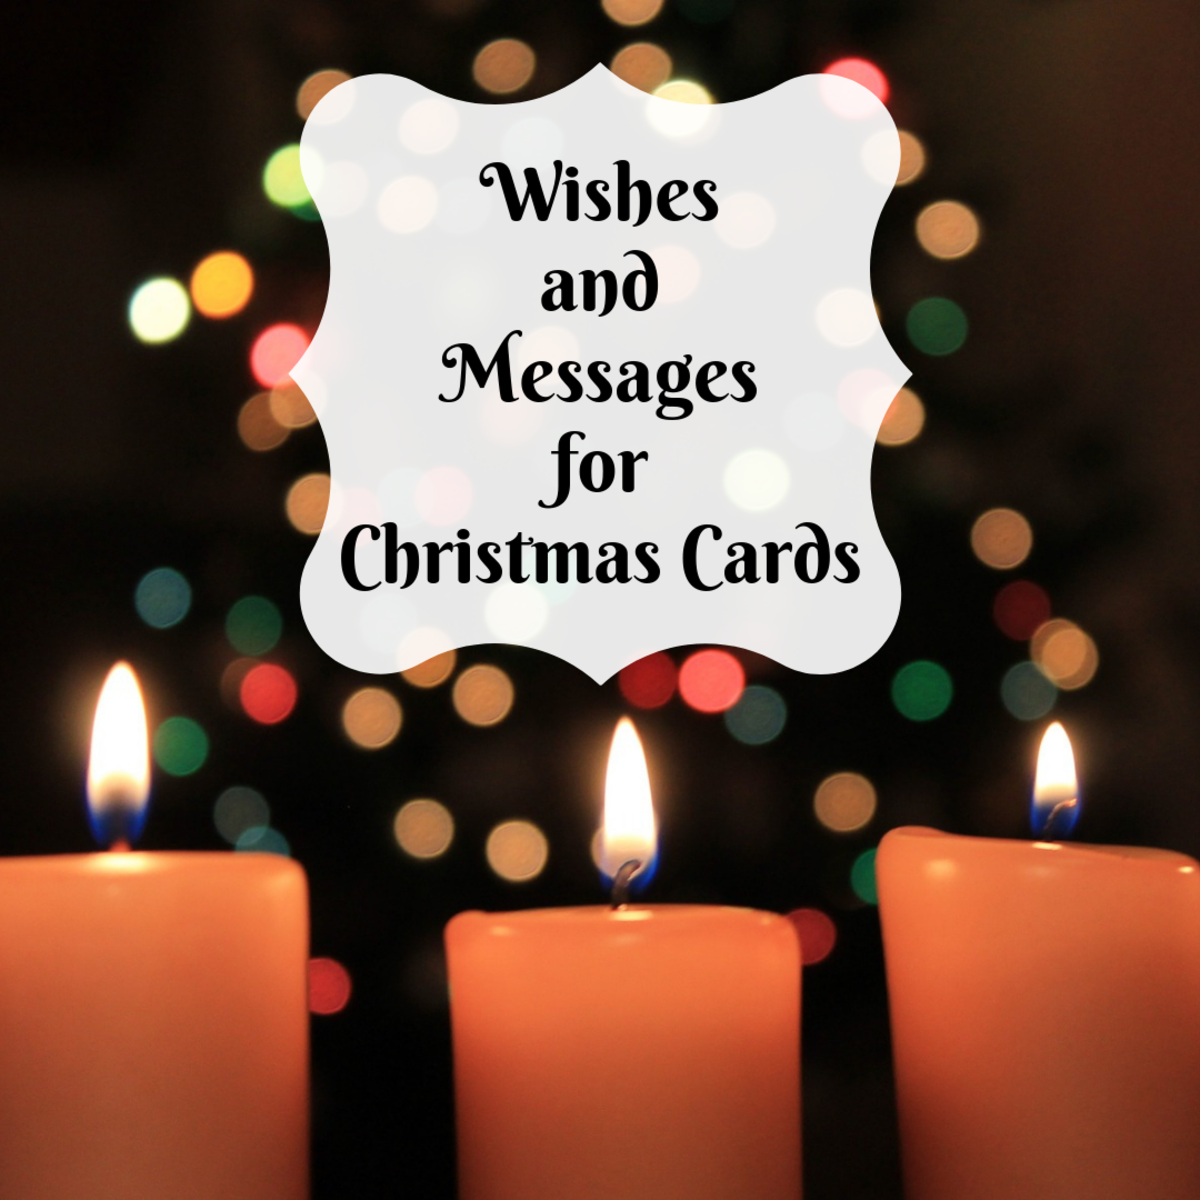 Find some ideas for meaningful messages, sayings, and wishes to write in your Christmas cards this year.